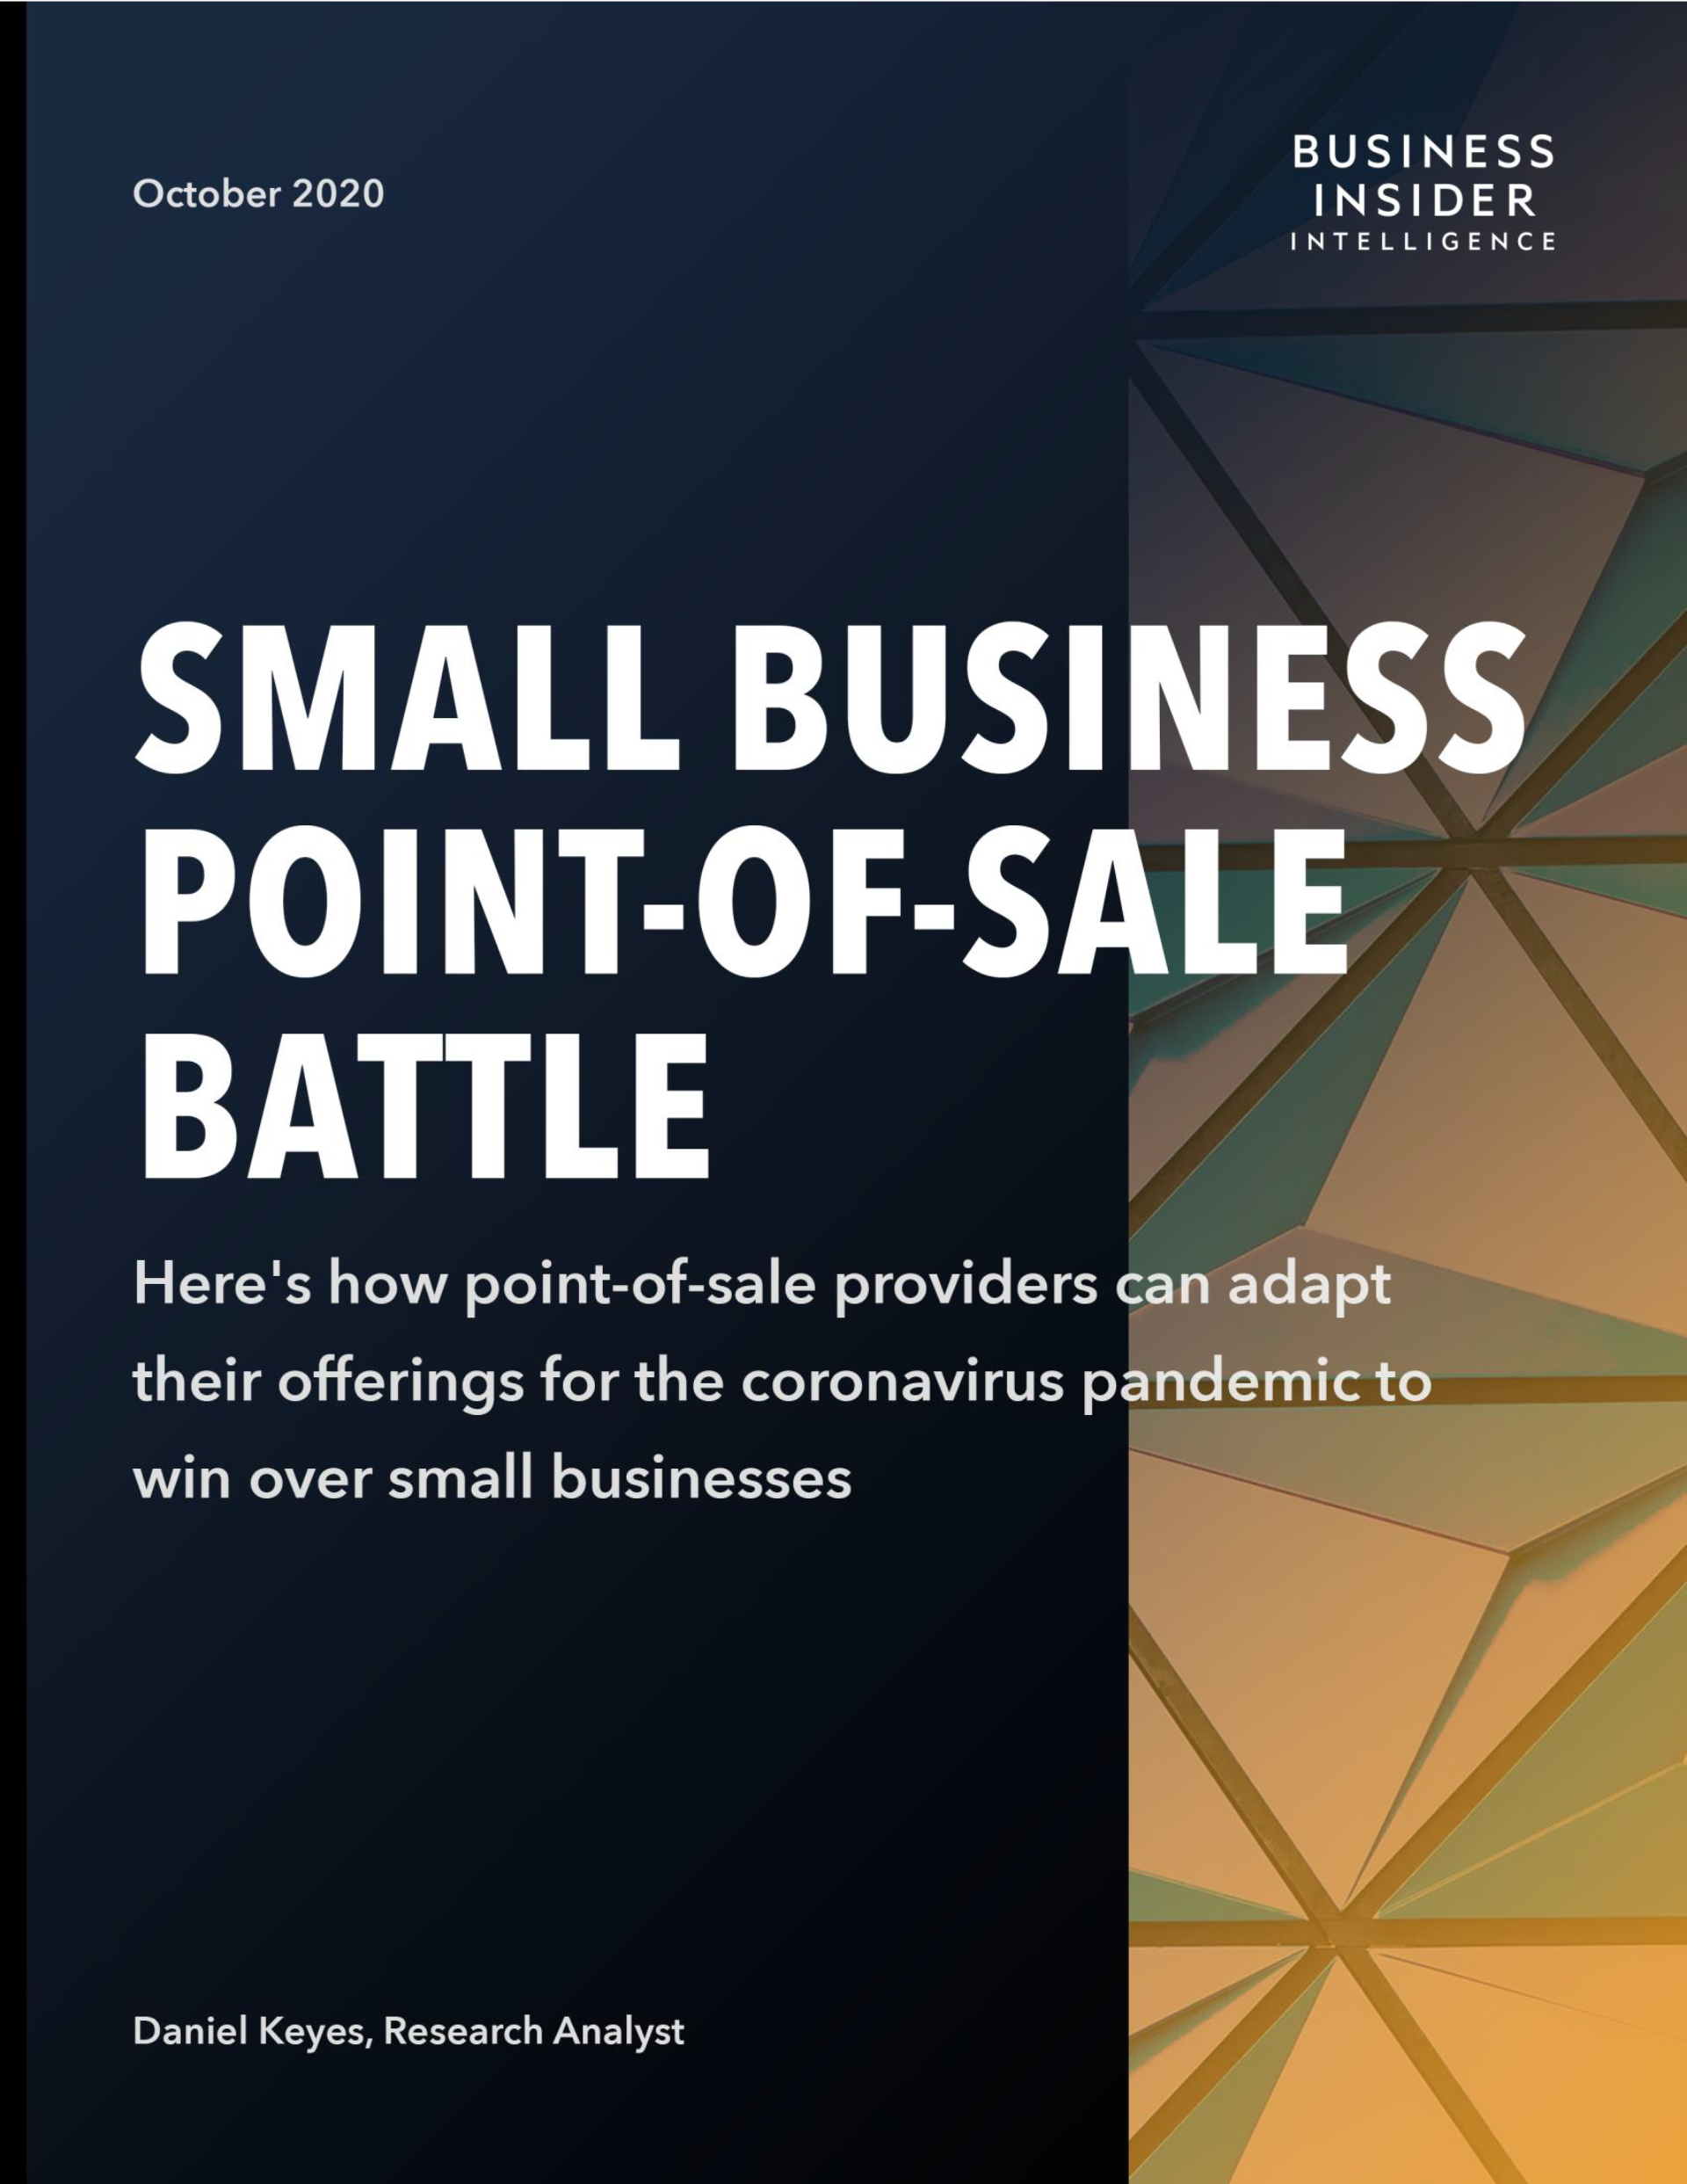 Small Business Point-of-Sale Battle